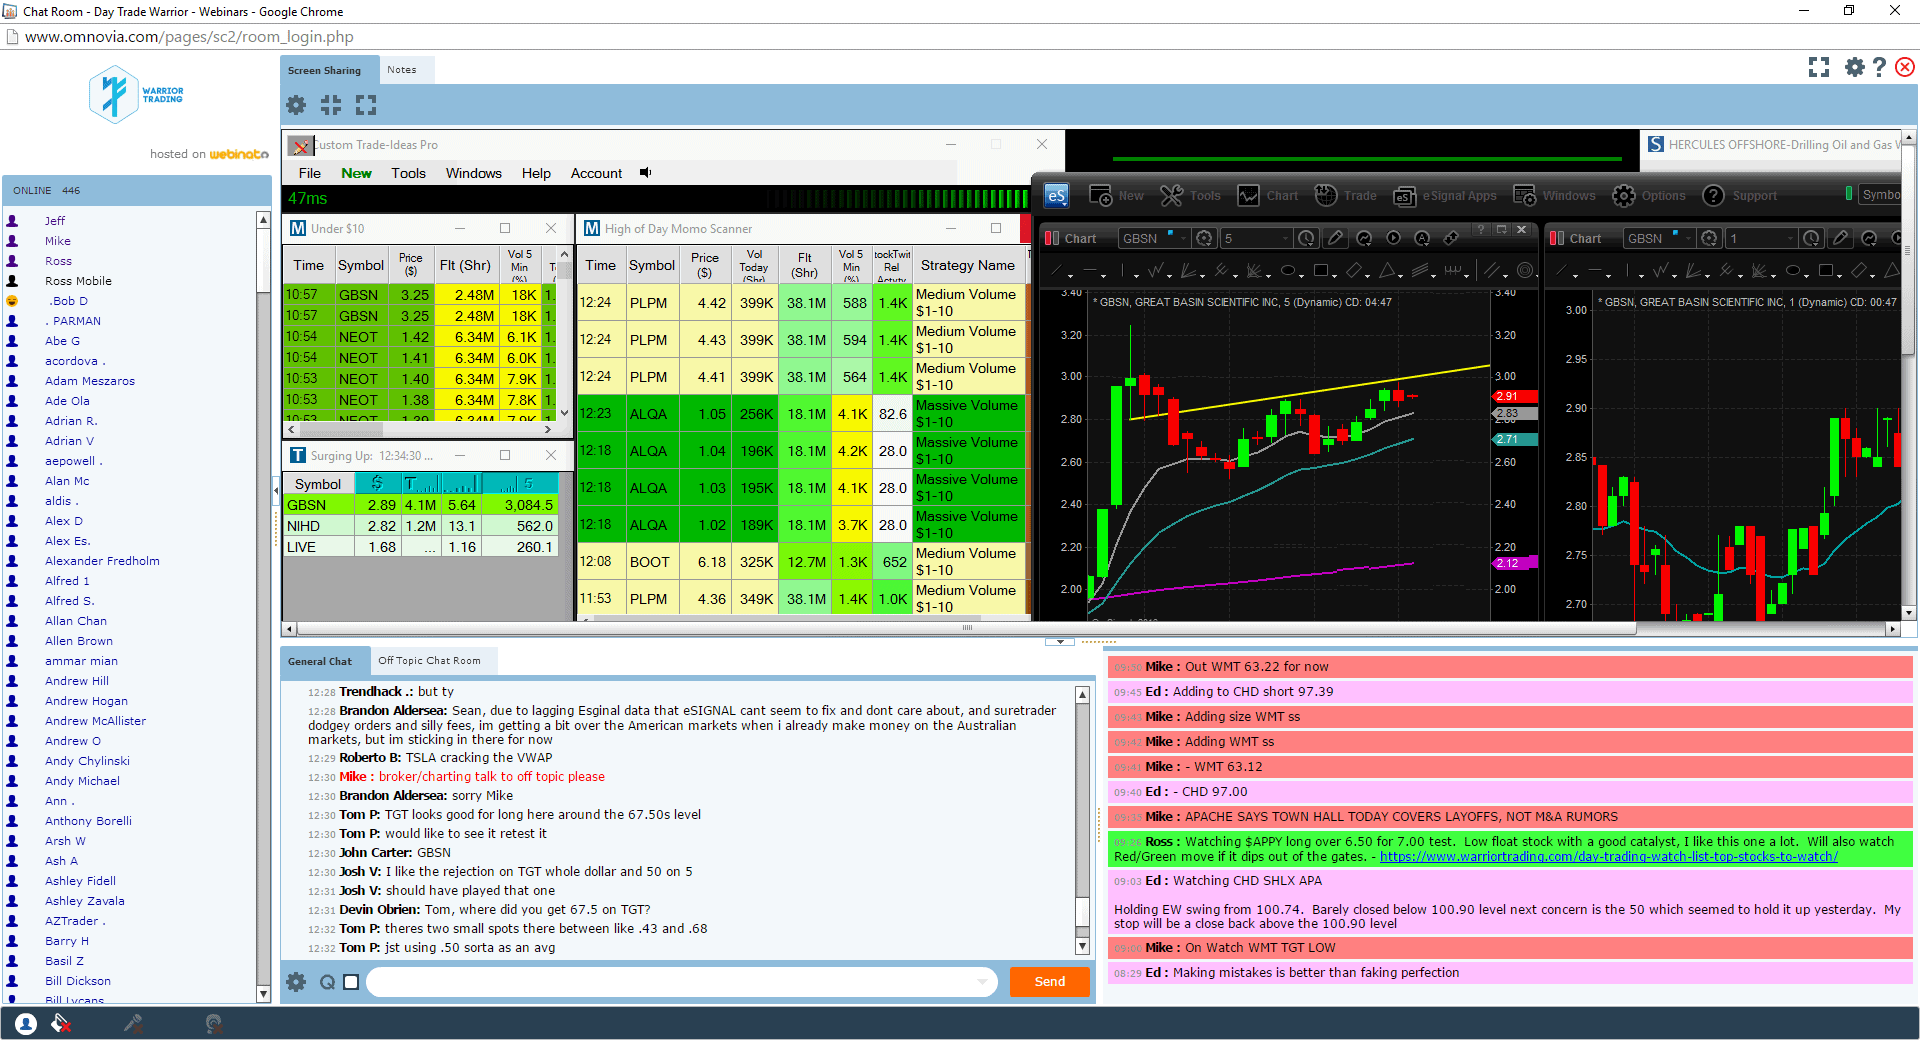 Logging into our Chat Room : Warrior Trading